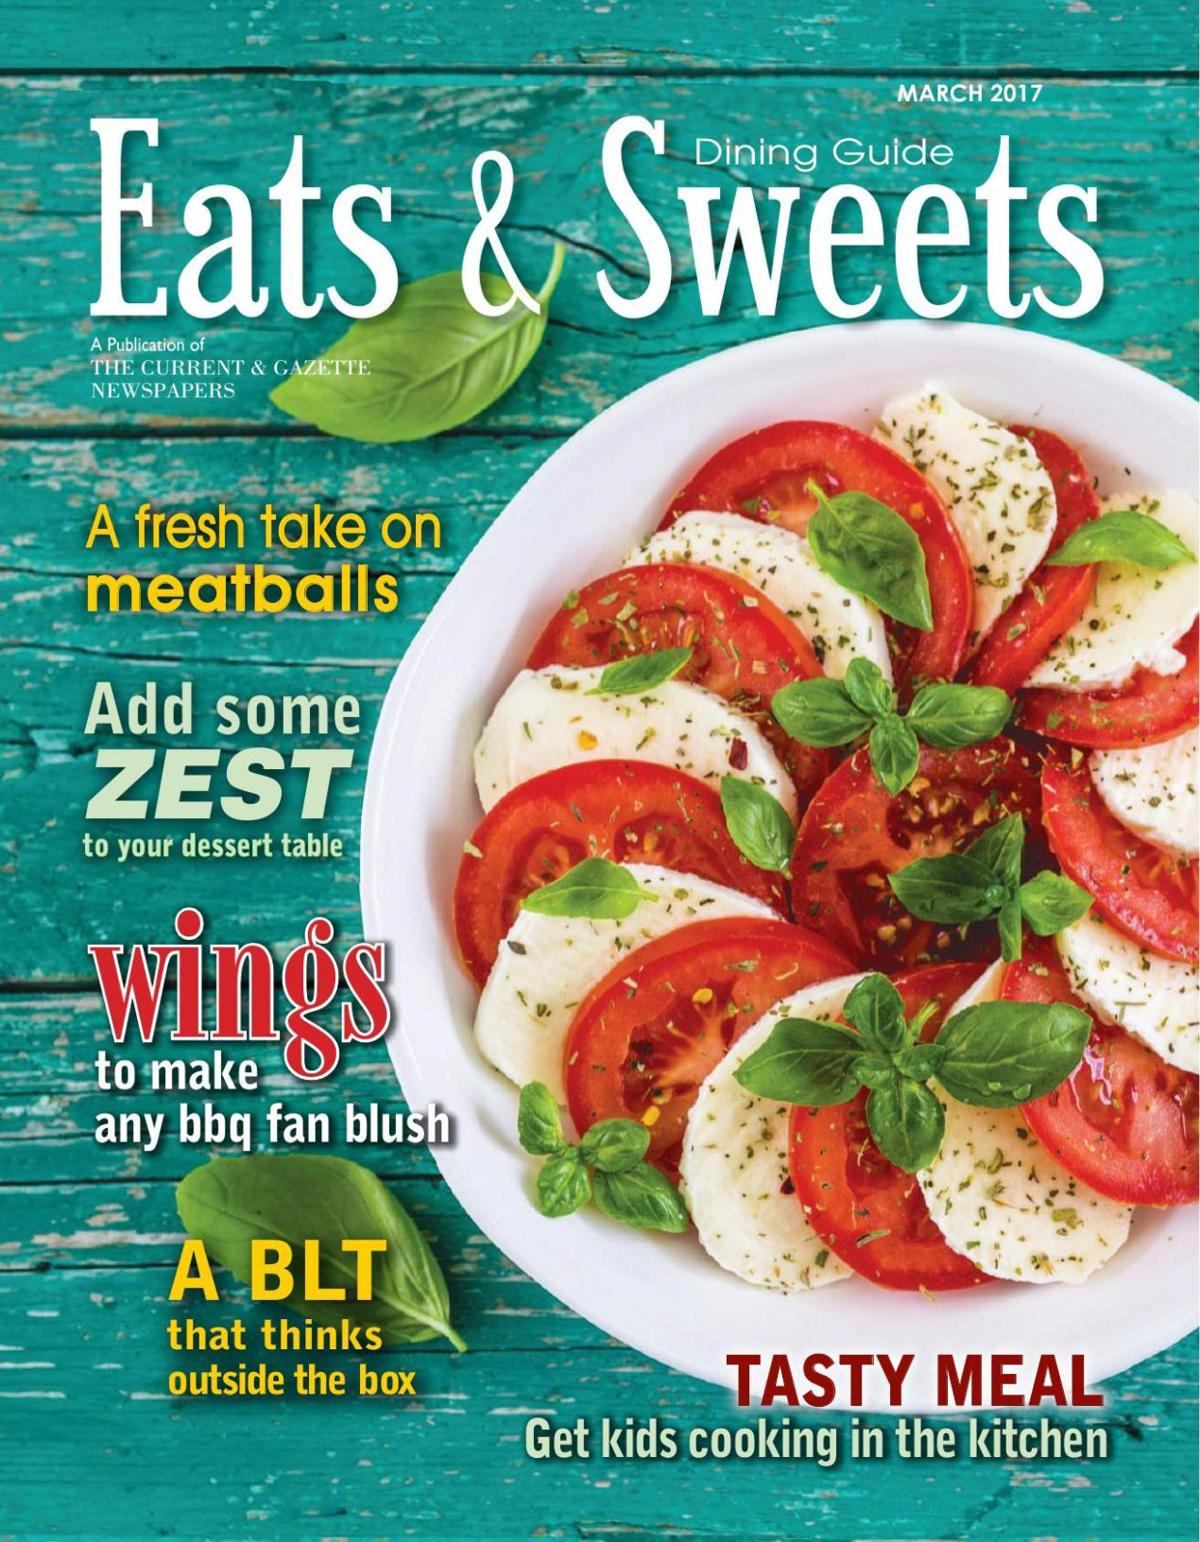 Eats & Sweets March 2017